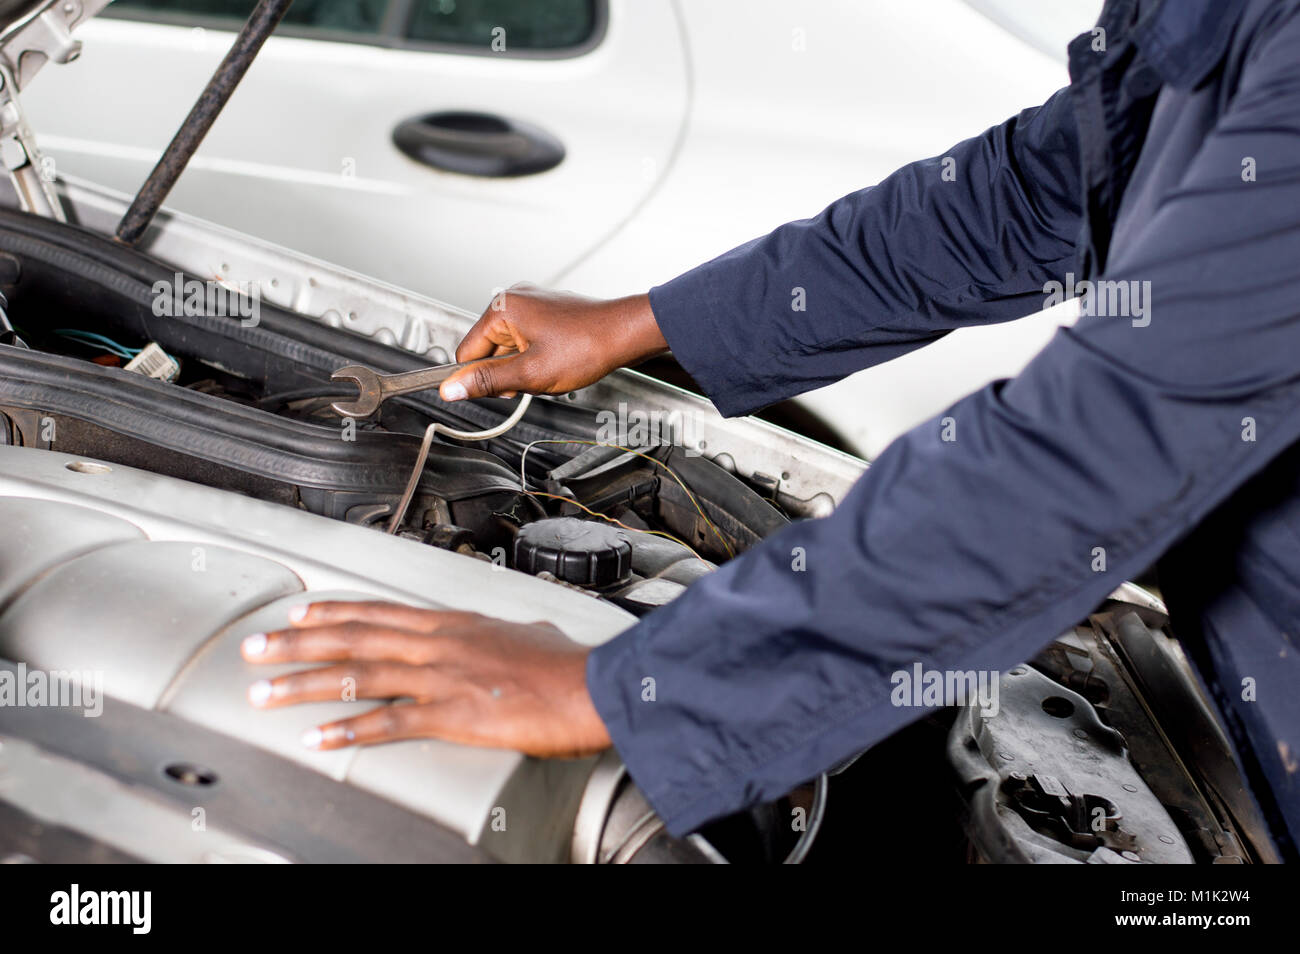 Closeup  of a hand holding a key on the engine of a broken car - Stock Image